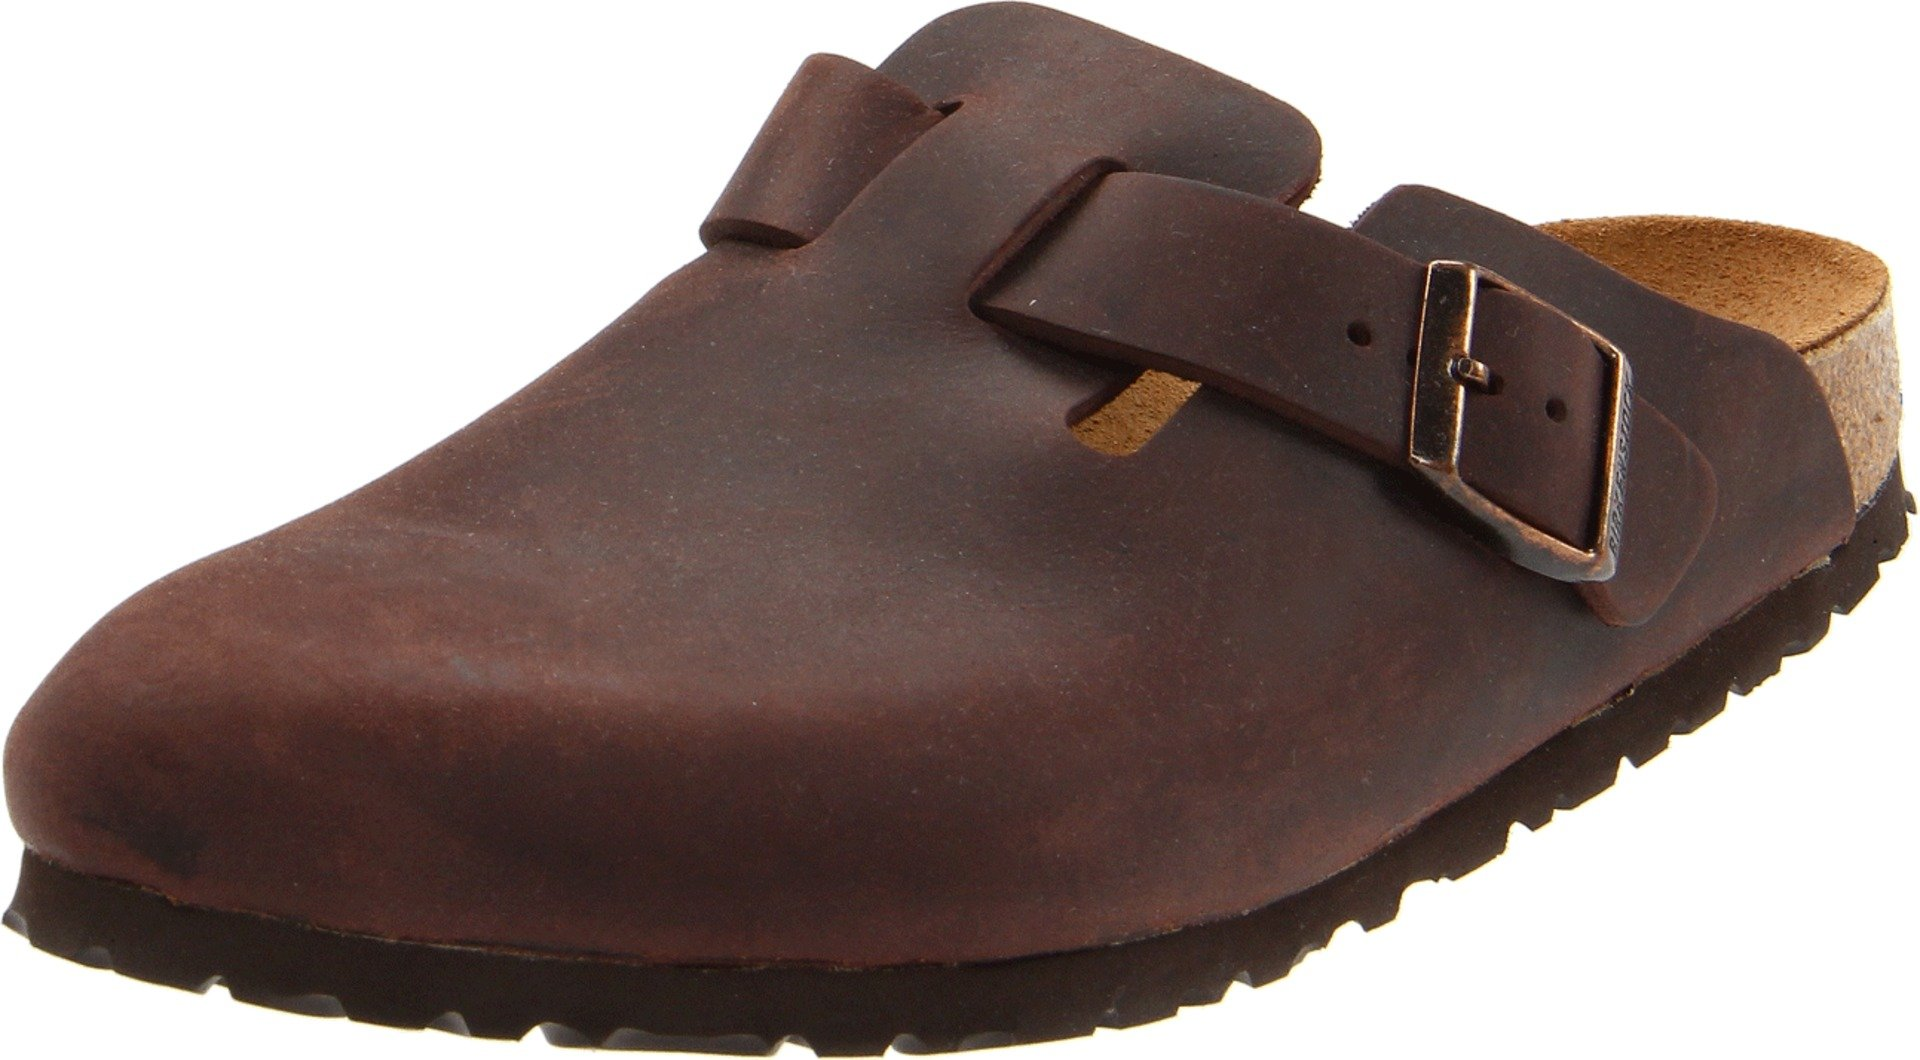 Birkenstock Unisex Boston Clog,Habana Oiled Leather,42 M EU